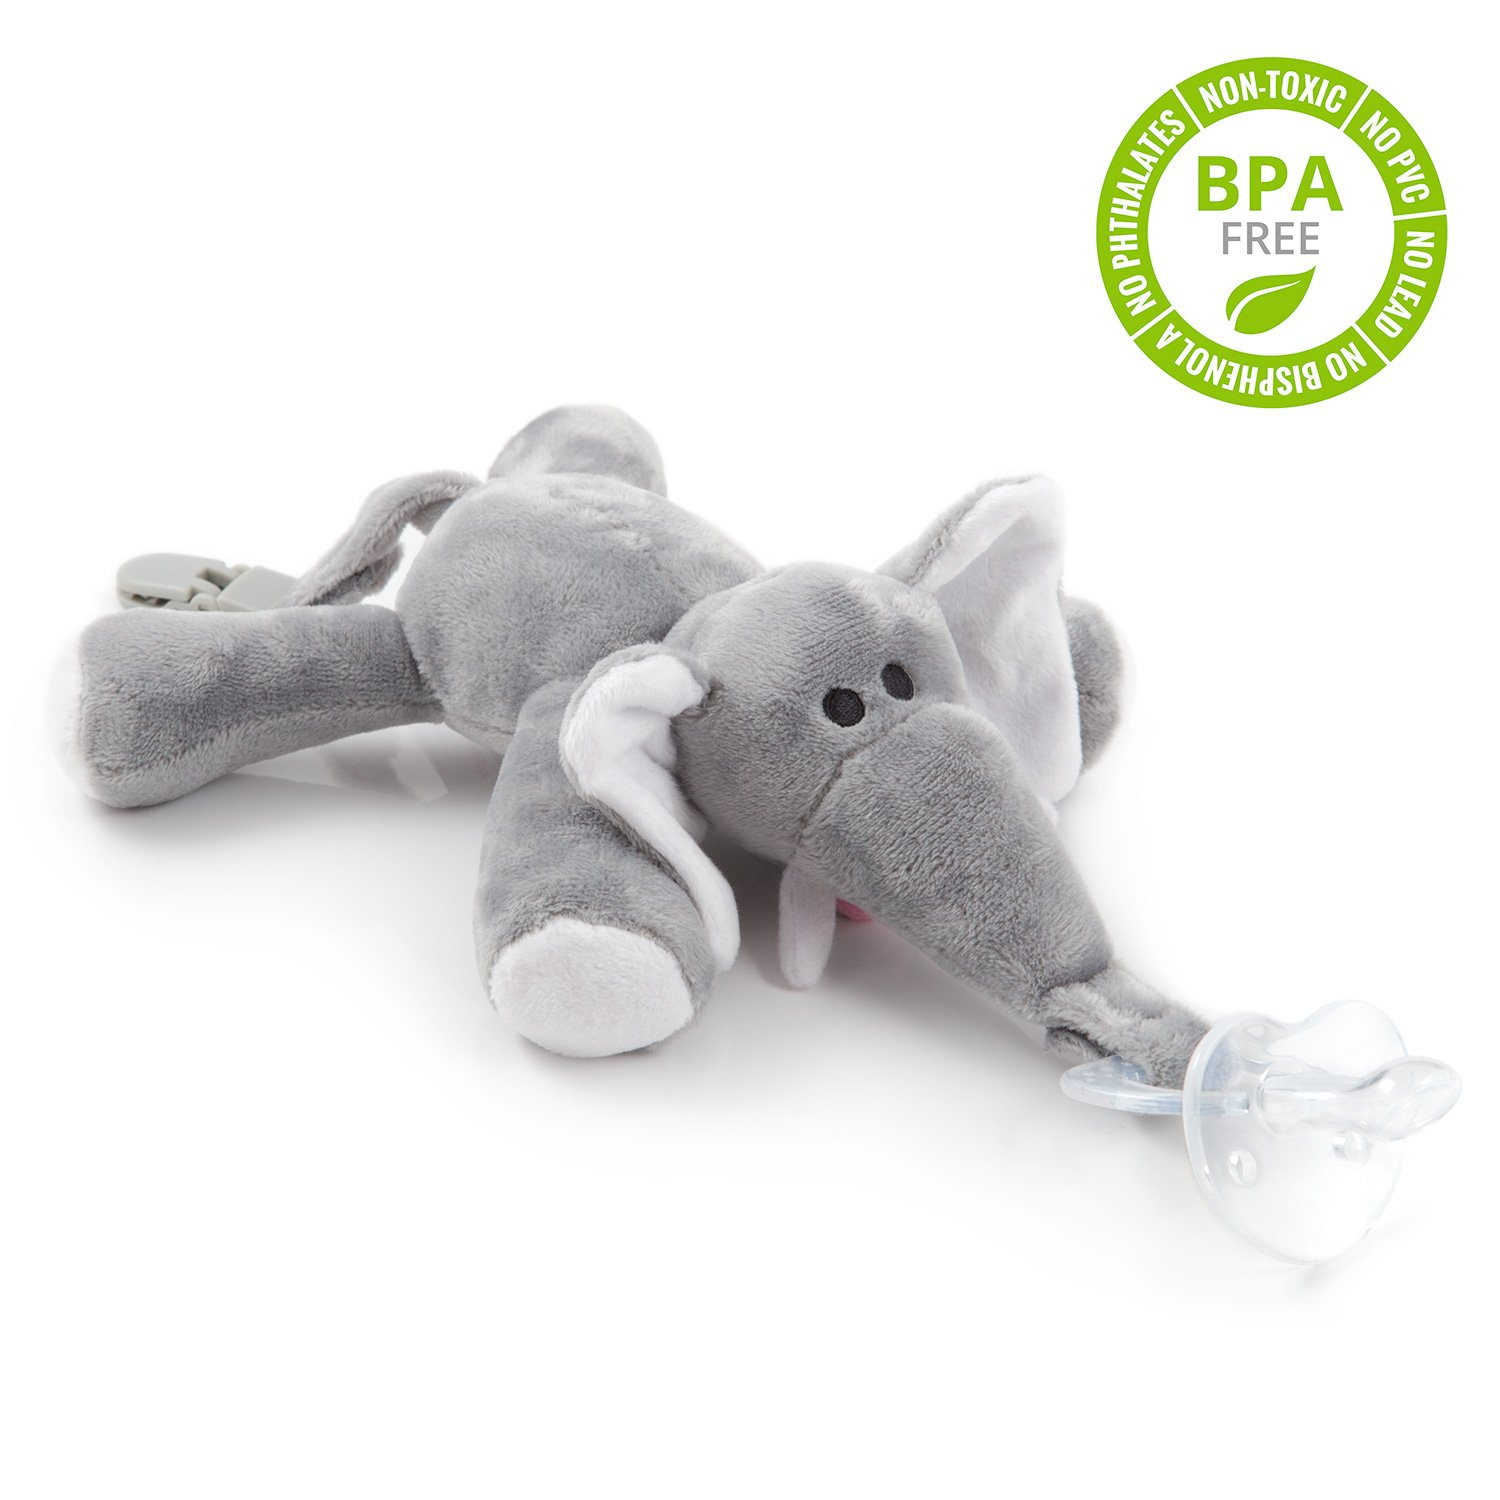 Pacifier Plush Toy Wow Blog